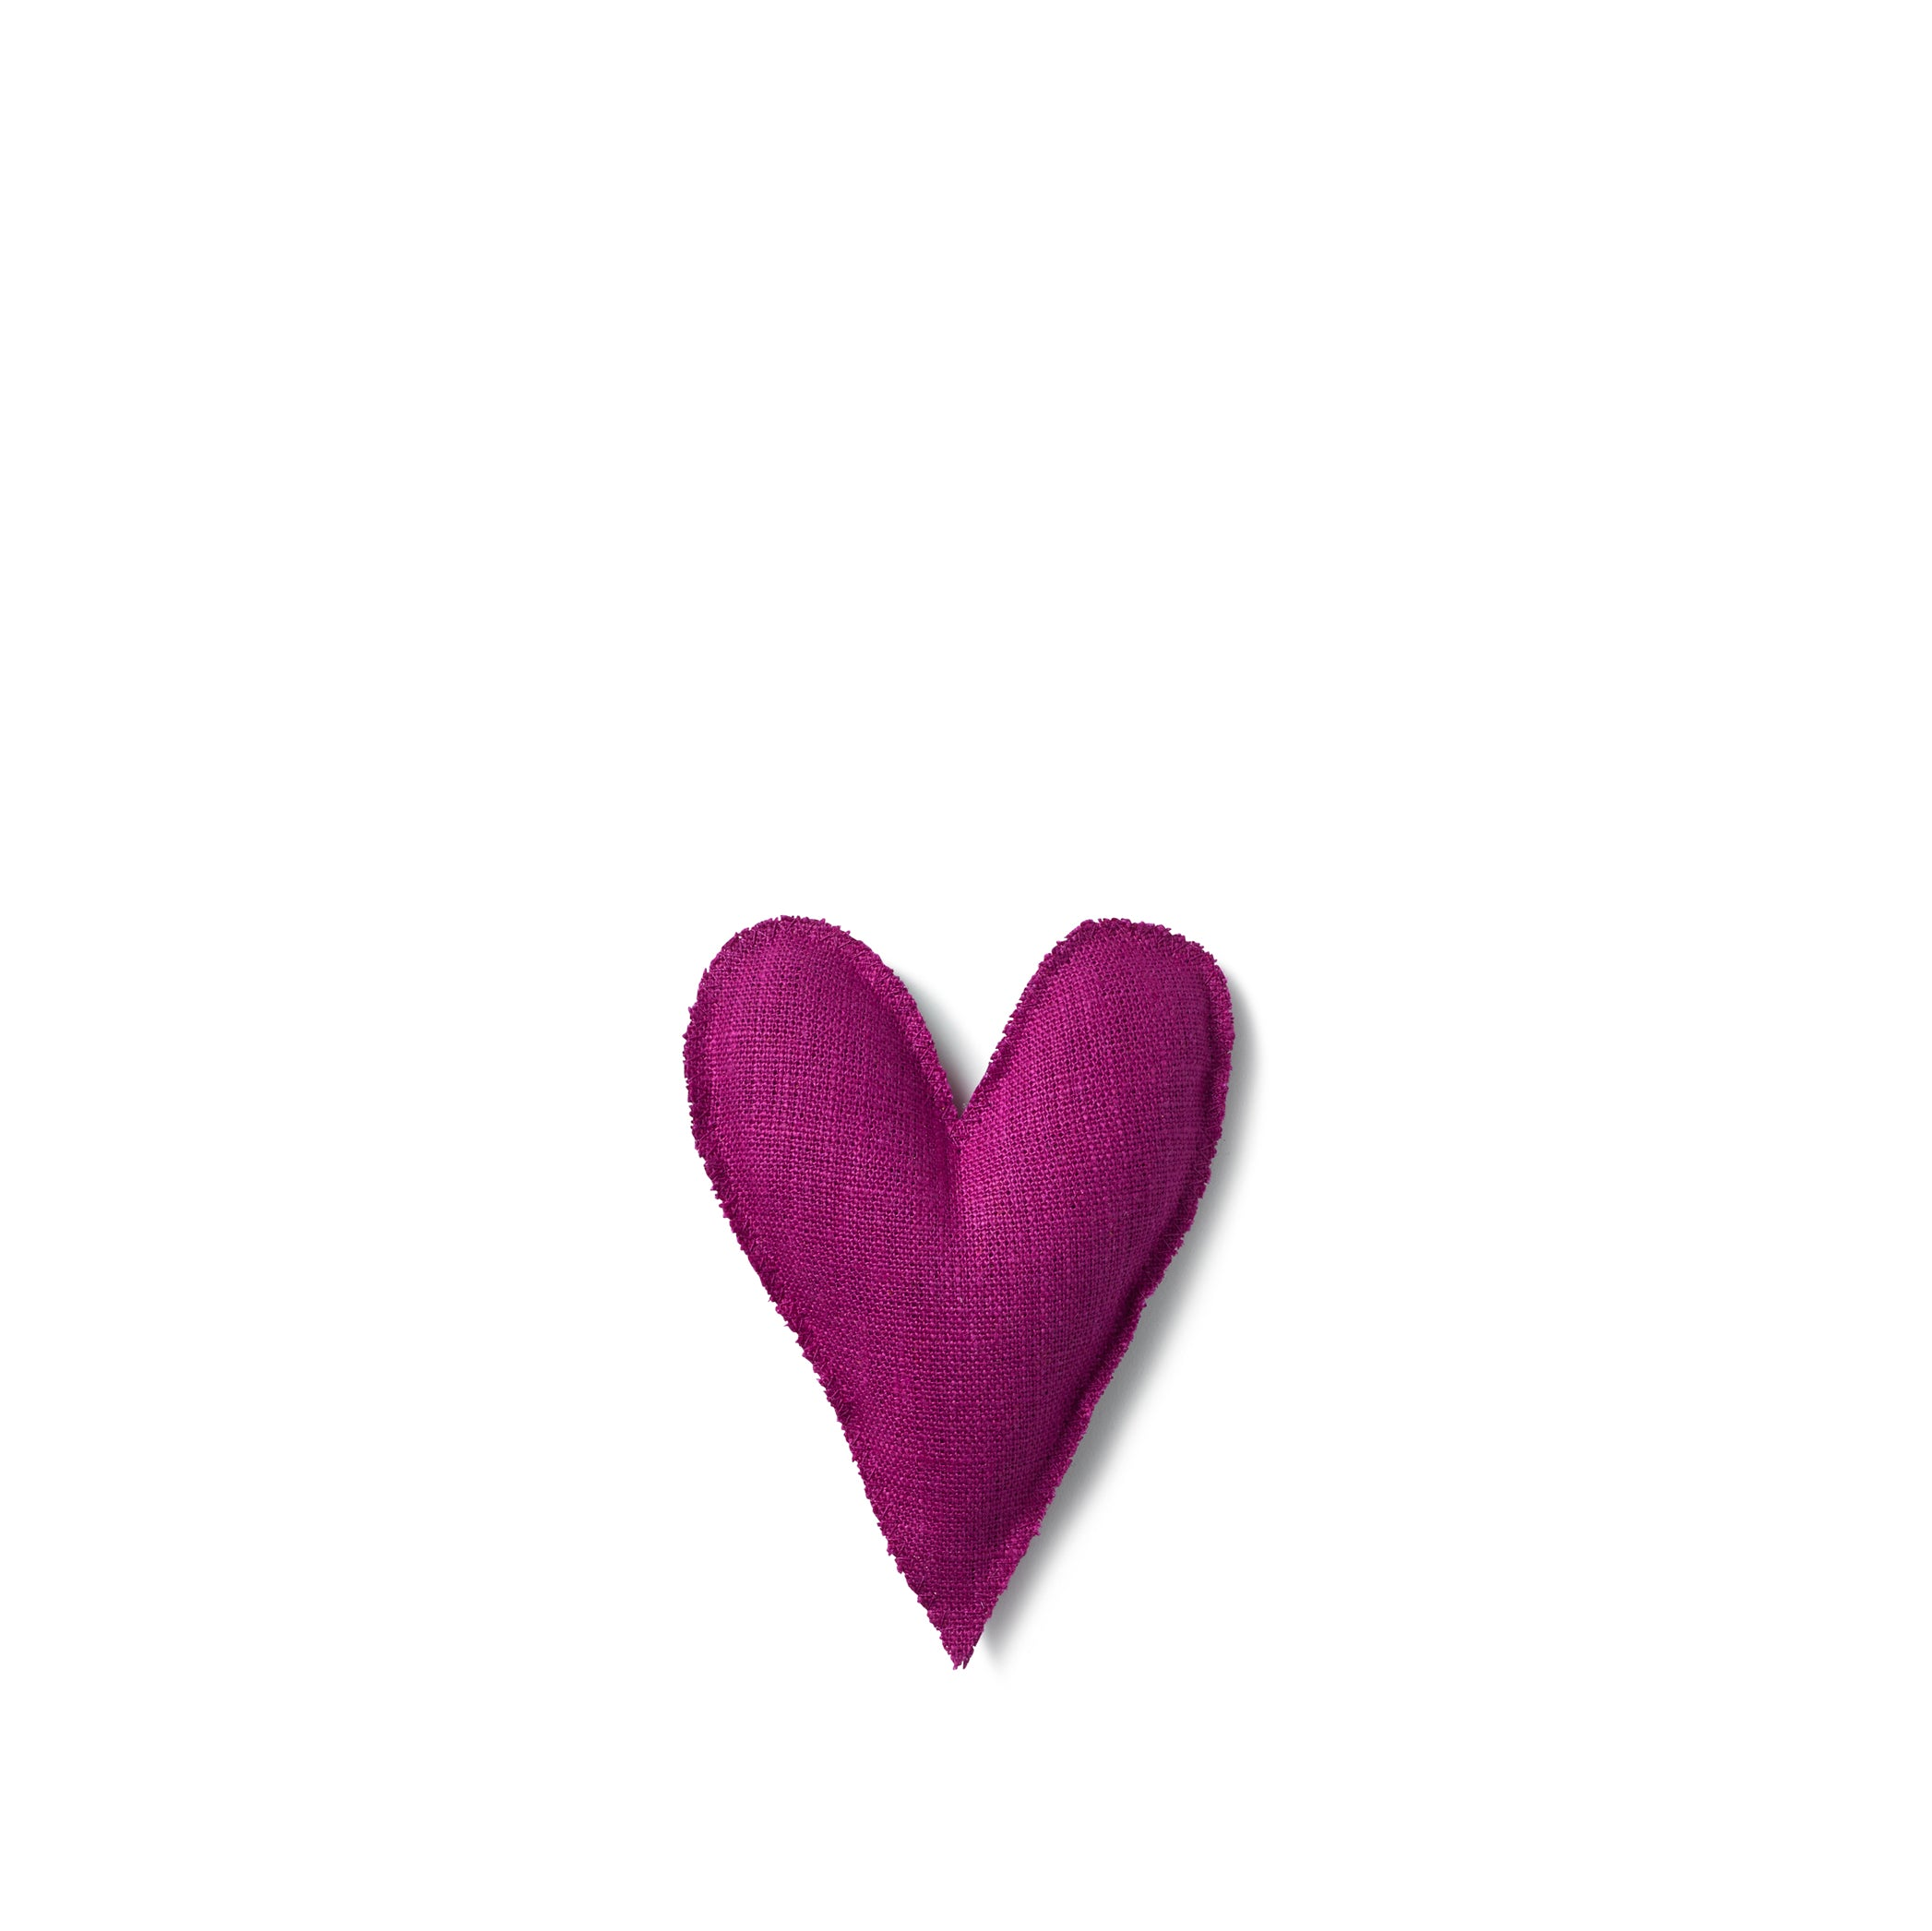 Lavender Heart in Fuchsia